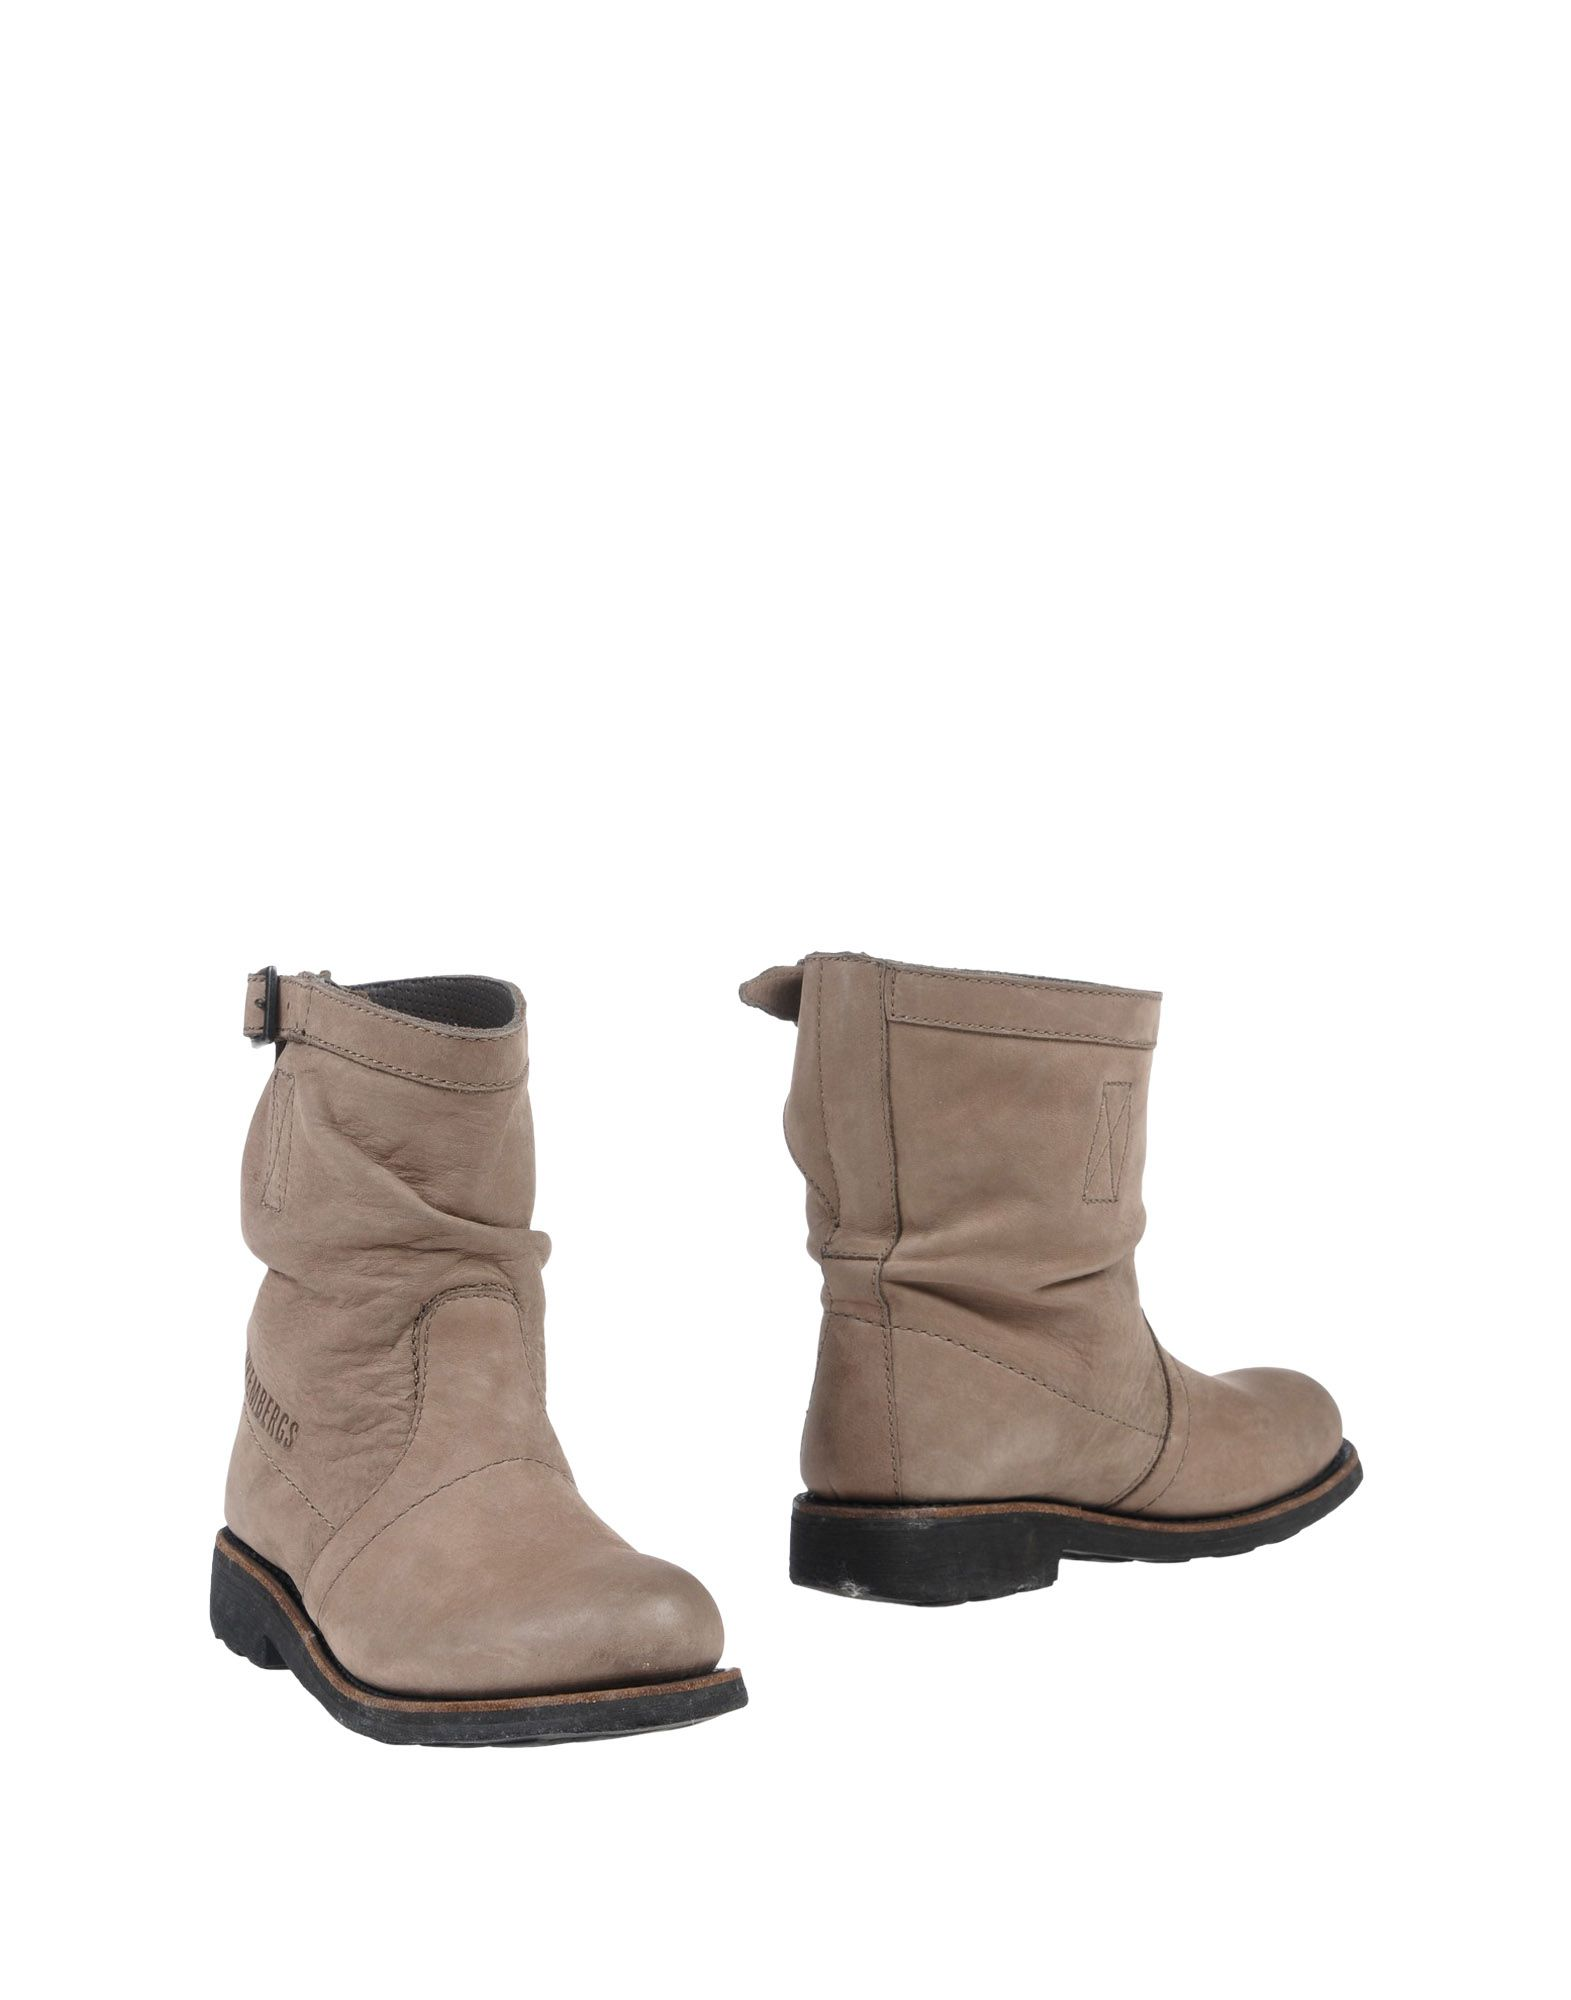 675cf60dbfc0 Bikkembergs Ankle Boots In Dove Grey